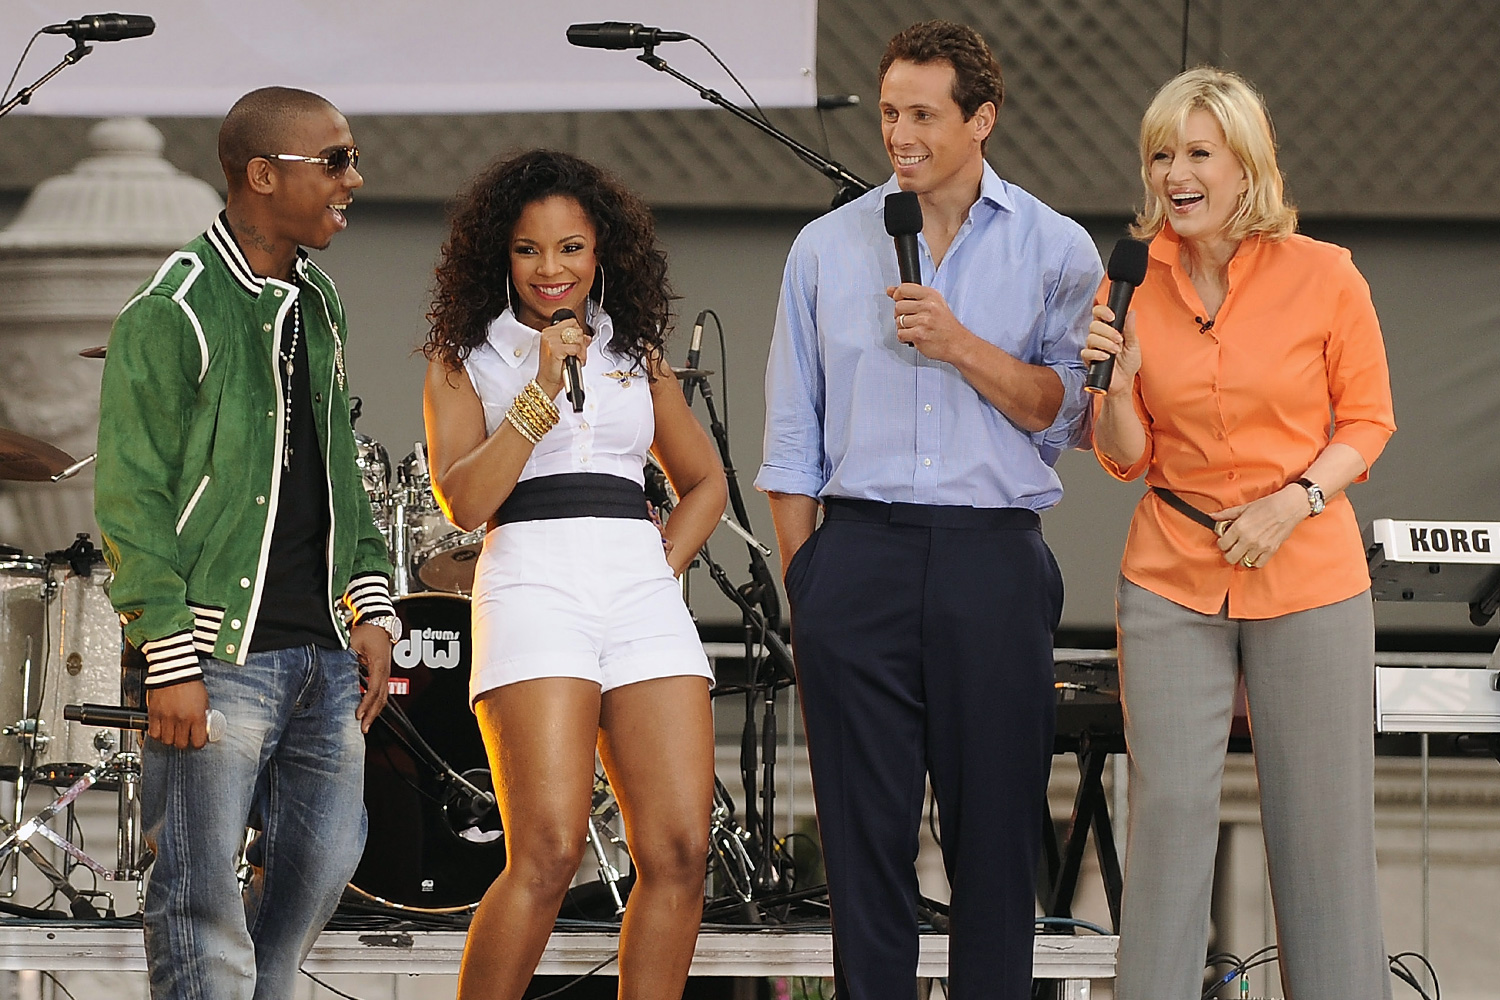 """Ja Rule, Ashanti, Chris Cuomo and Diane Sawyer attend ABC's """"Good Morning America"""" show on June 6, 2008 at Bryant Park in New York"""